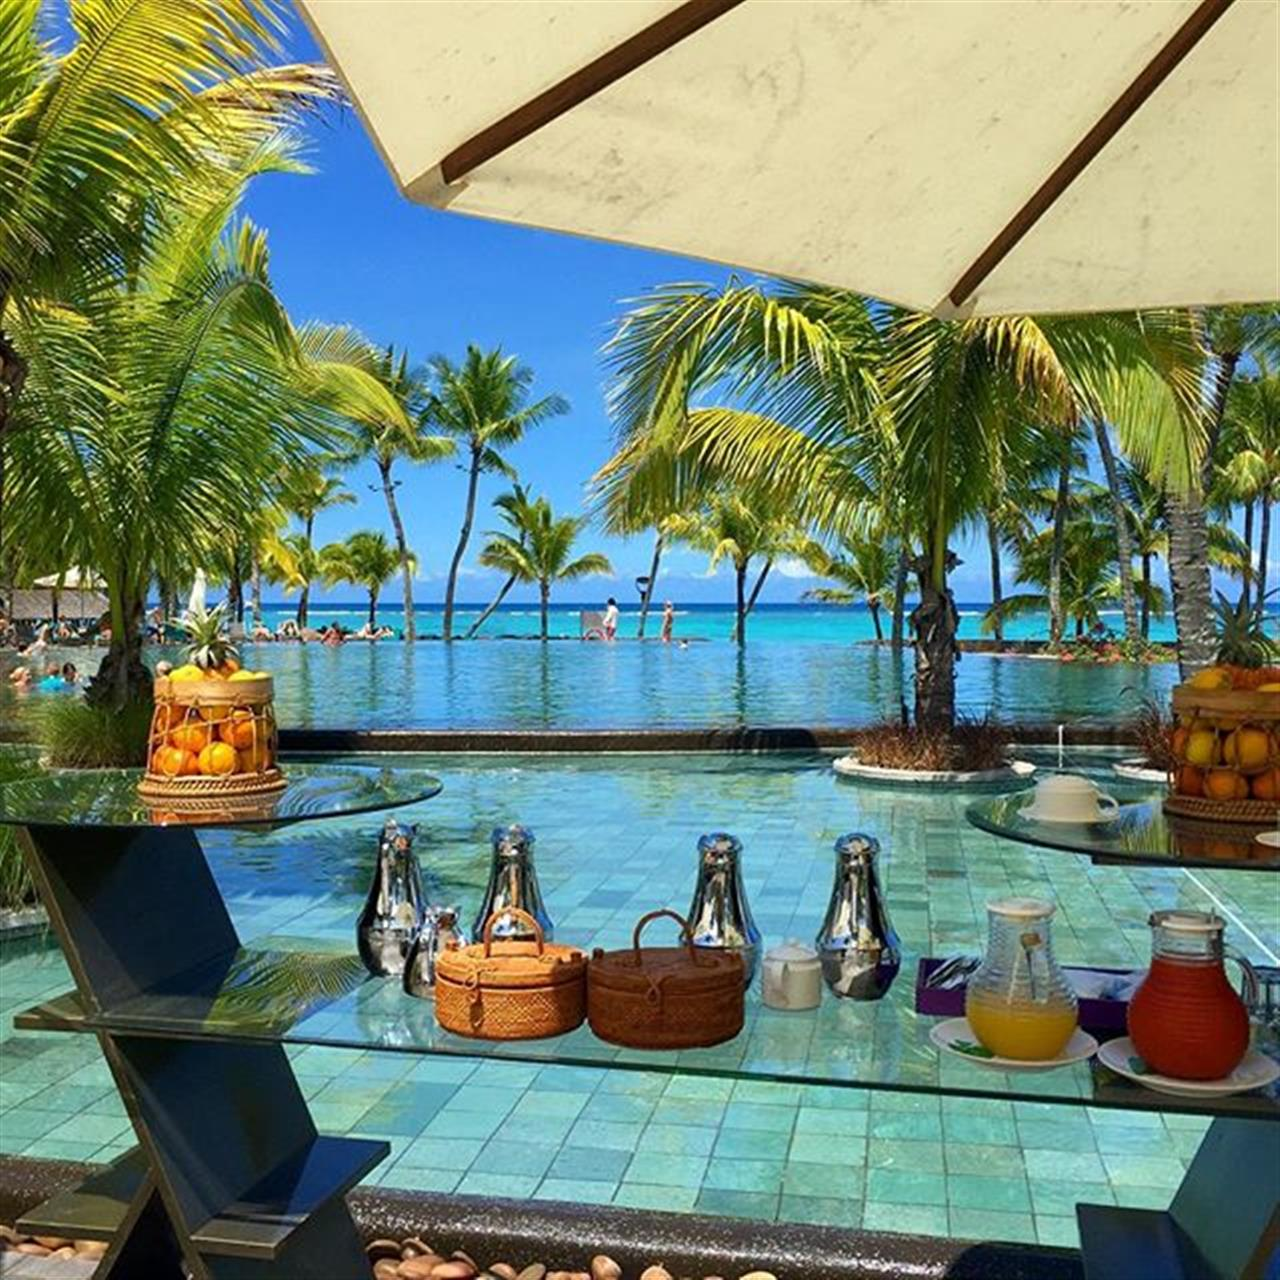 Inviting fruits and pool in #mauritius at the Trou Aux Biches Hotel #beachcomberhotels #leadingrelocal